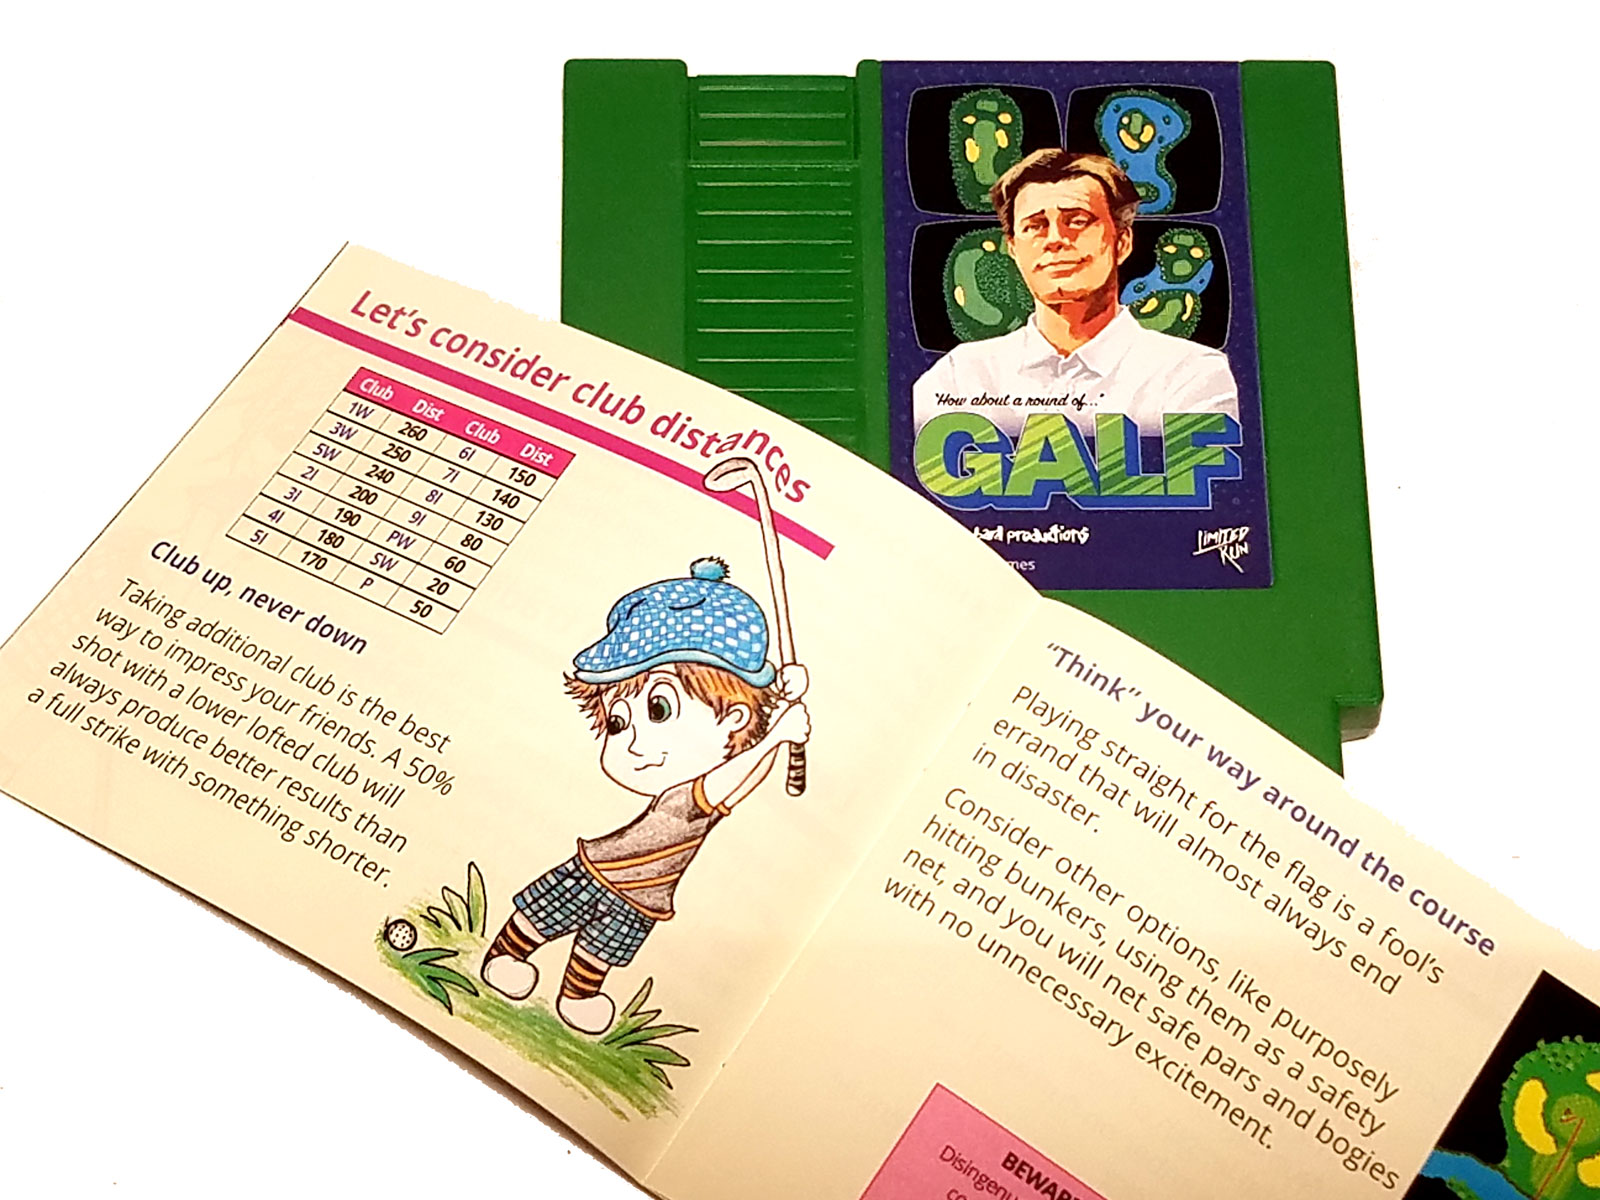 Golf Story's minigame, Galf comes on an NES cartridge with a manual